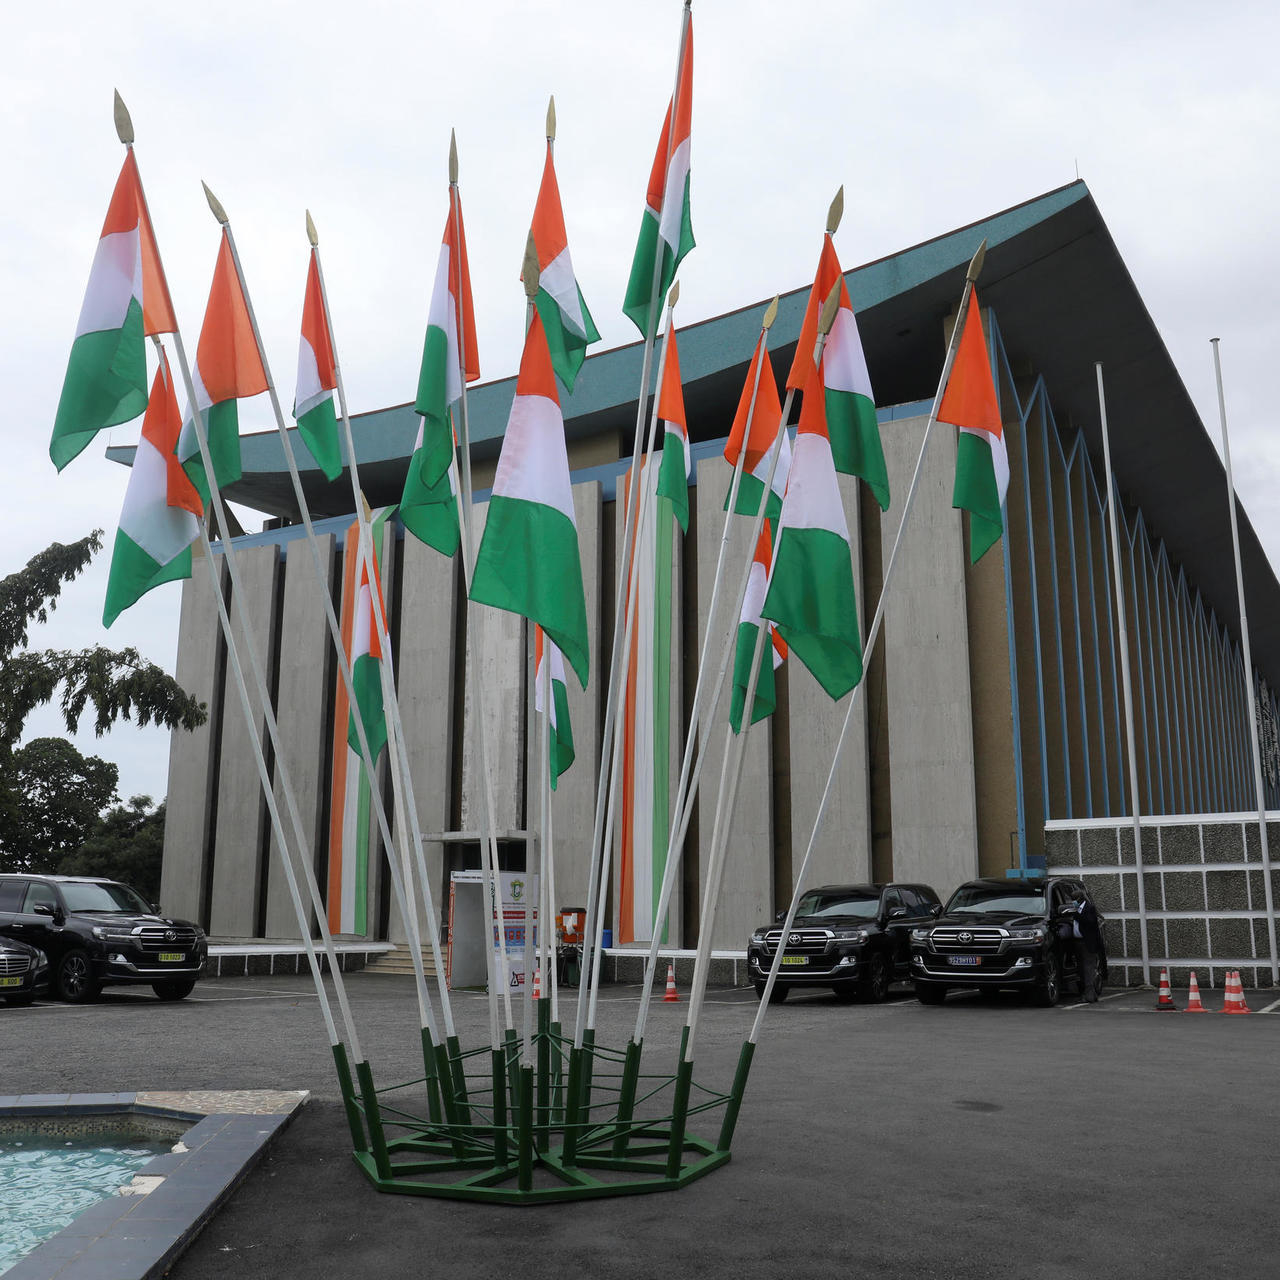 File photo of Ivory Coast's flags next to the presidential palace on the country's Independence Day, in Abidjan, Ivory Coast August 7, 2020. REUTERS - LUC GNAGO